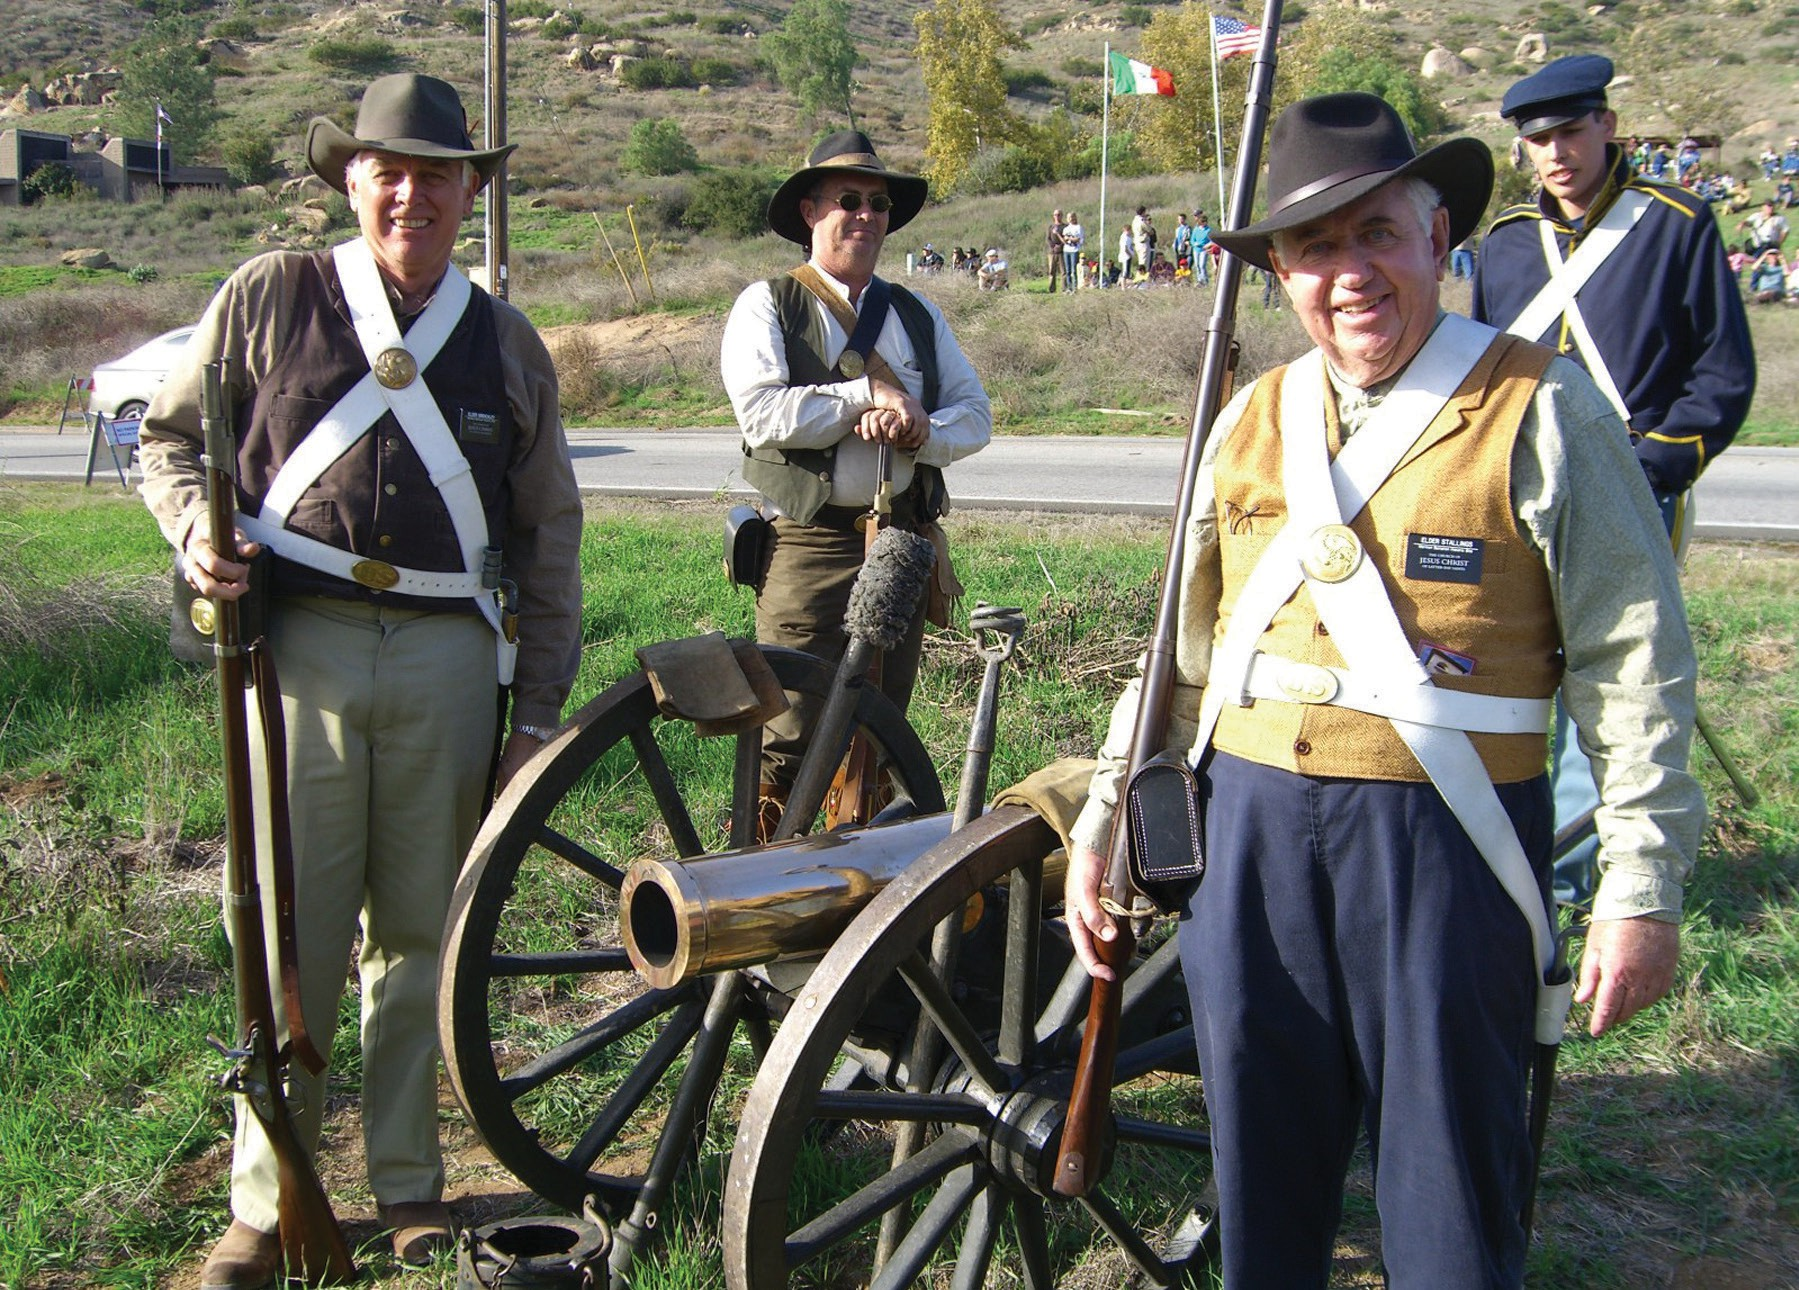 Re-enactors, in period attire with historically accurate cannon. Courtesy of The Brenchley Bunch blog.